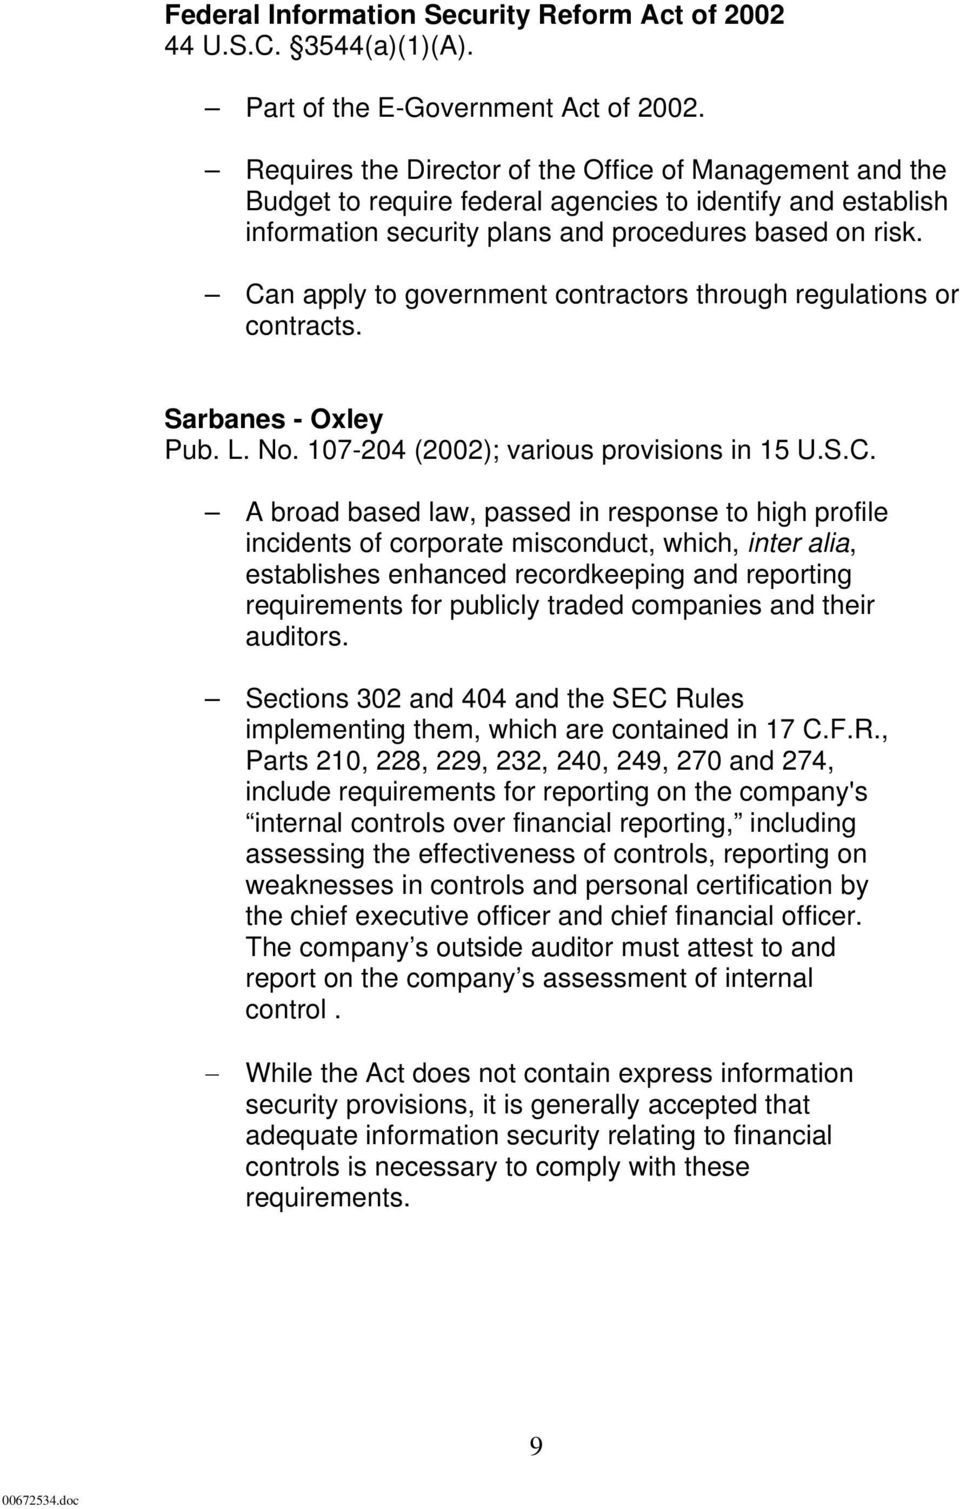 Can apply to government contractors through regulations or contracts. Sarbanes - Oxley Pub. L. No. 107-204 (2002); various provisions in 15 U.S.C. A broad based law, passed in response to high